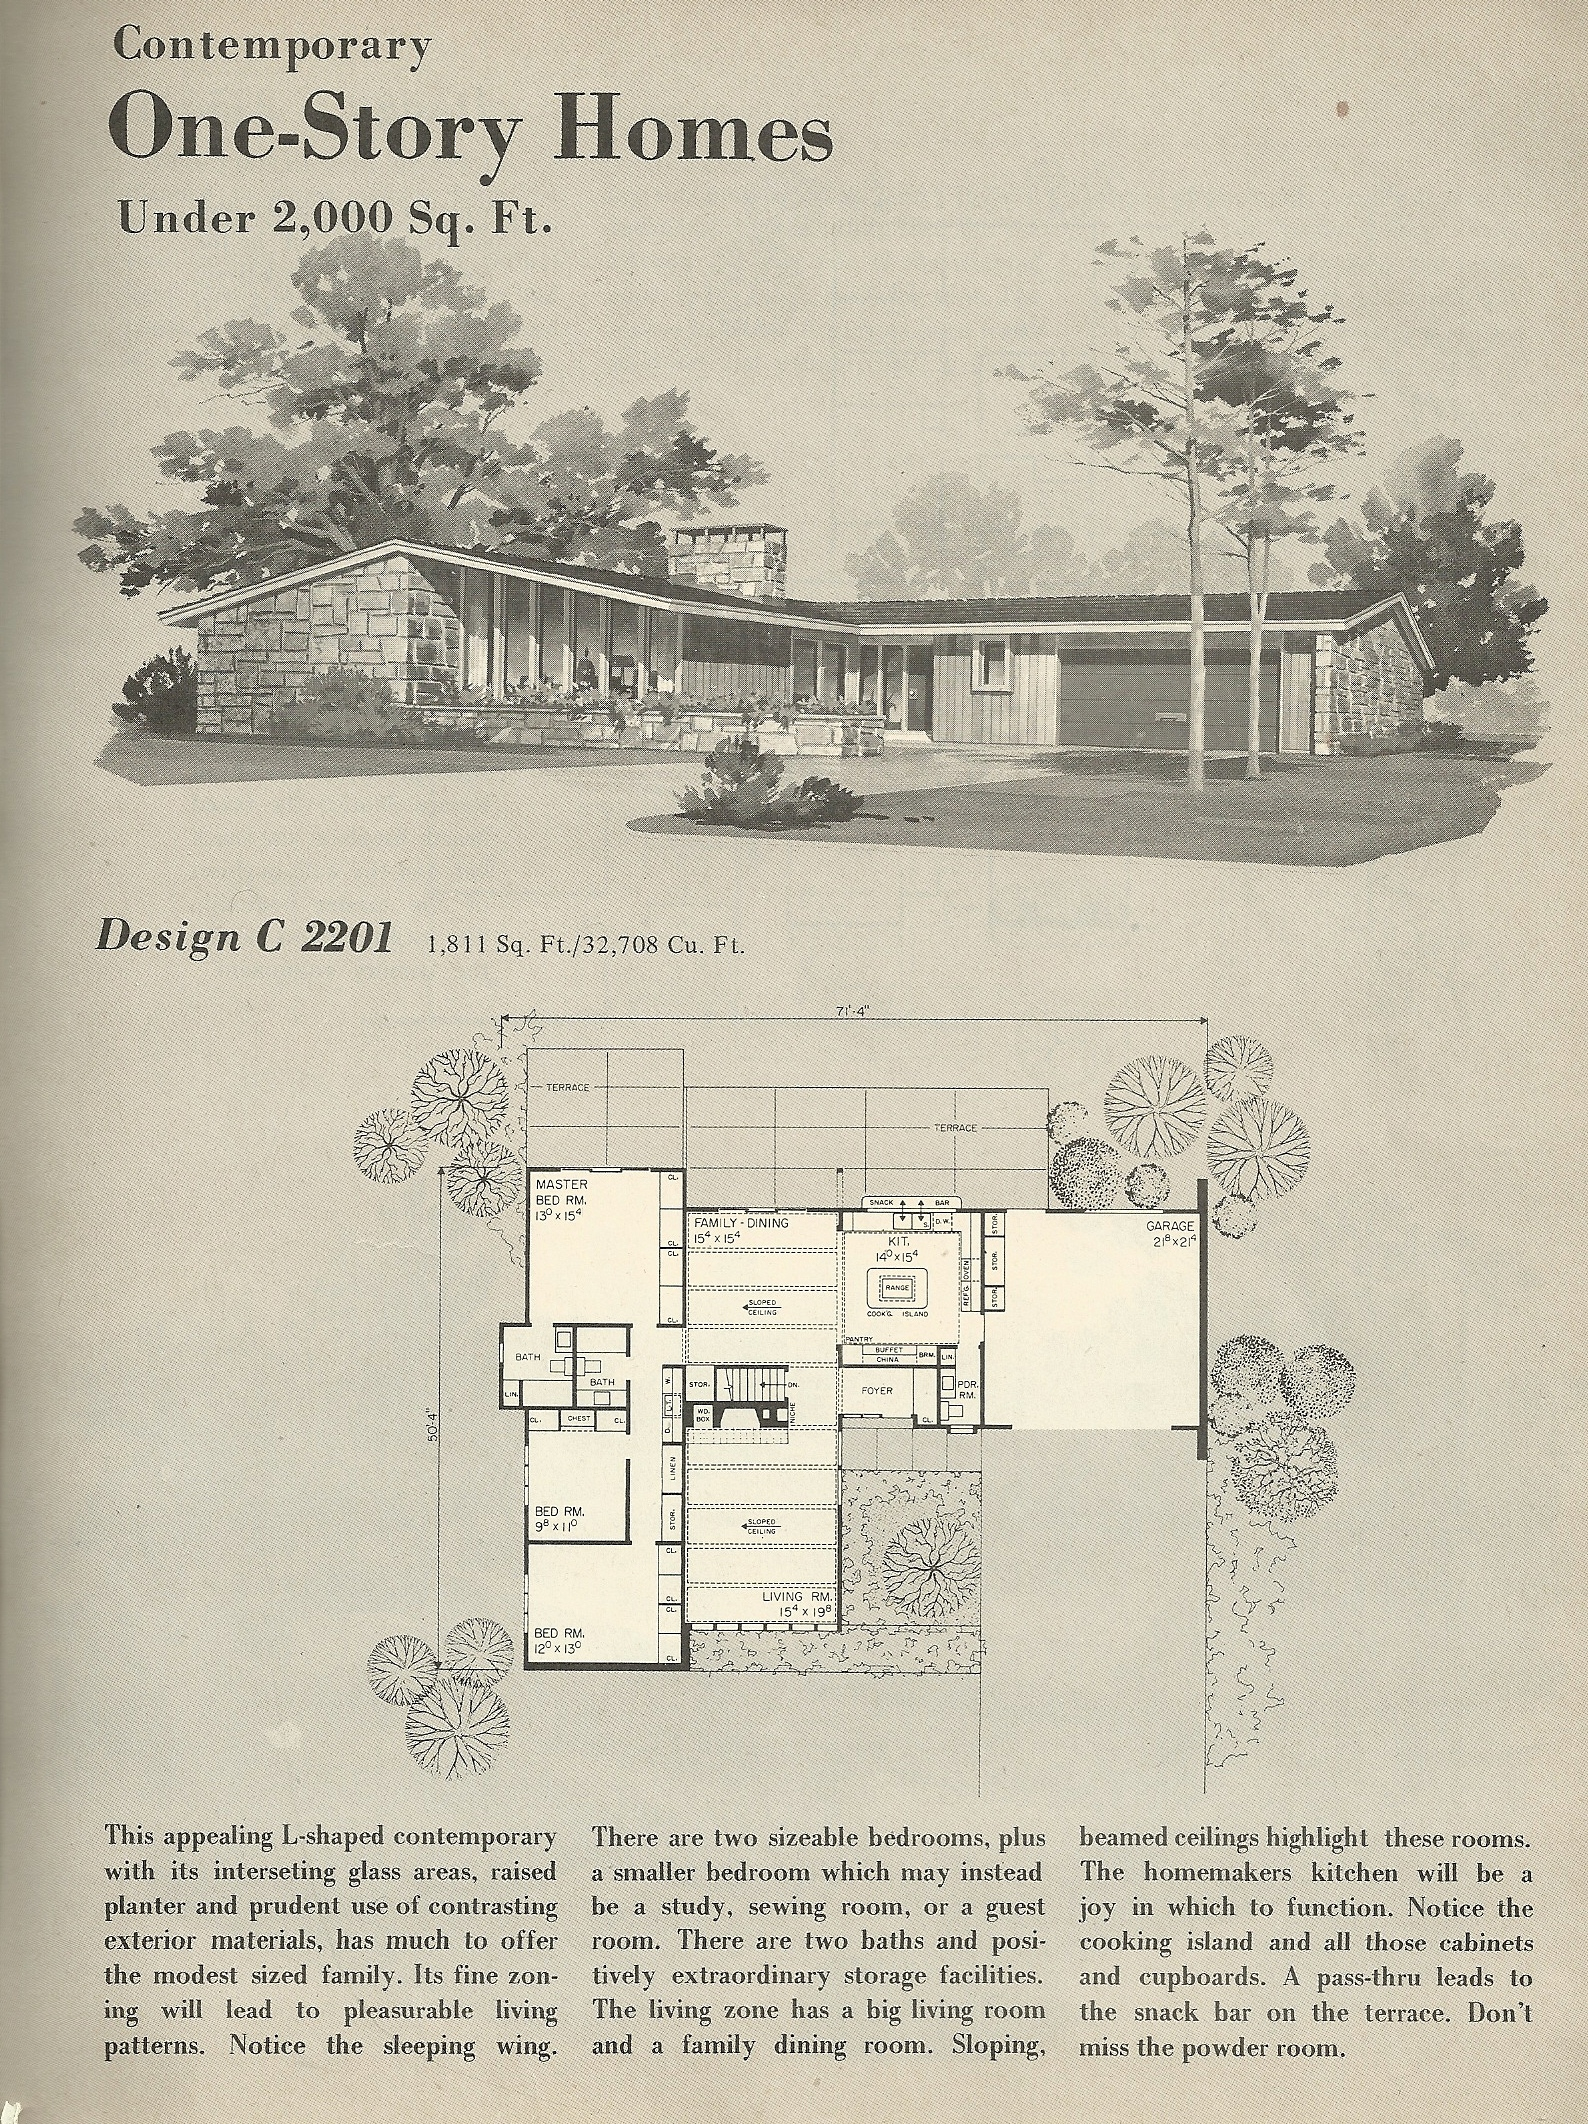 Vintage house plans 2201 antique alter ego for Vintage floor plans